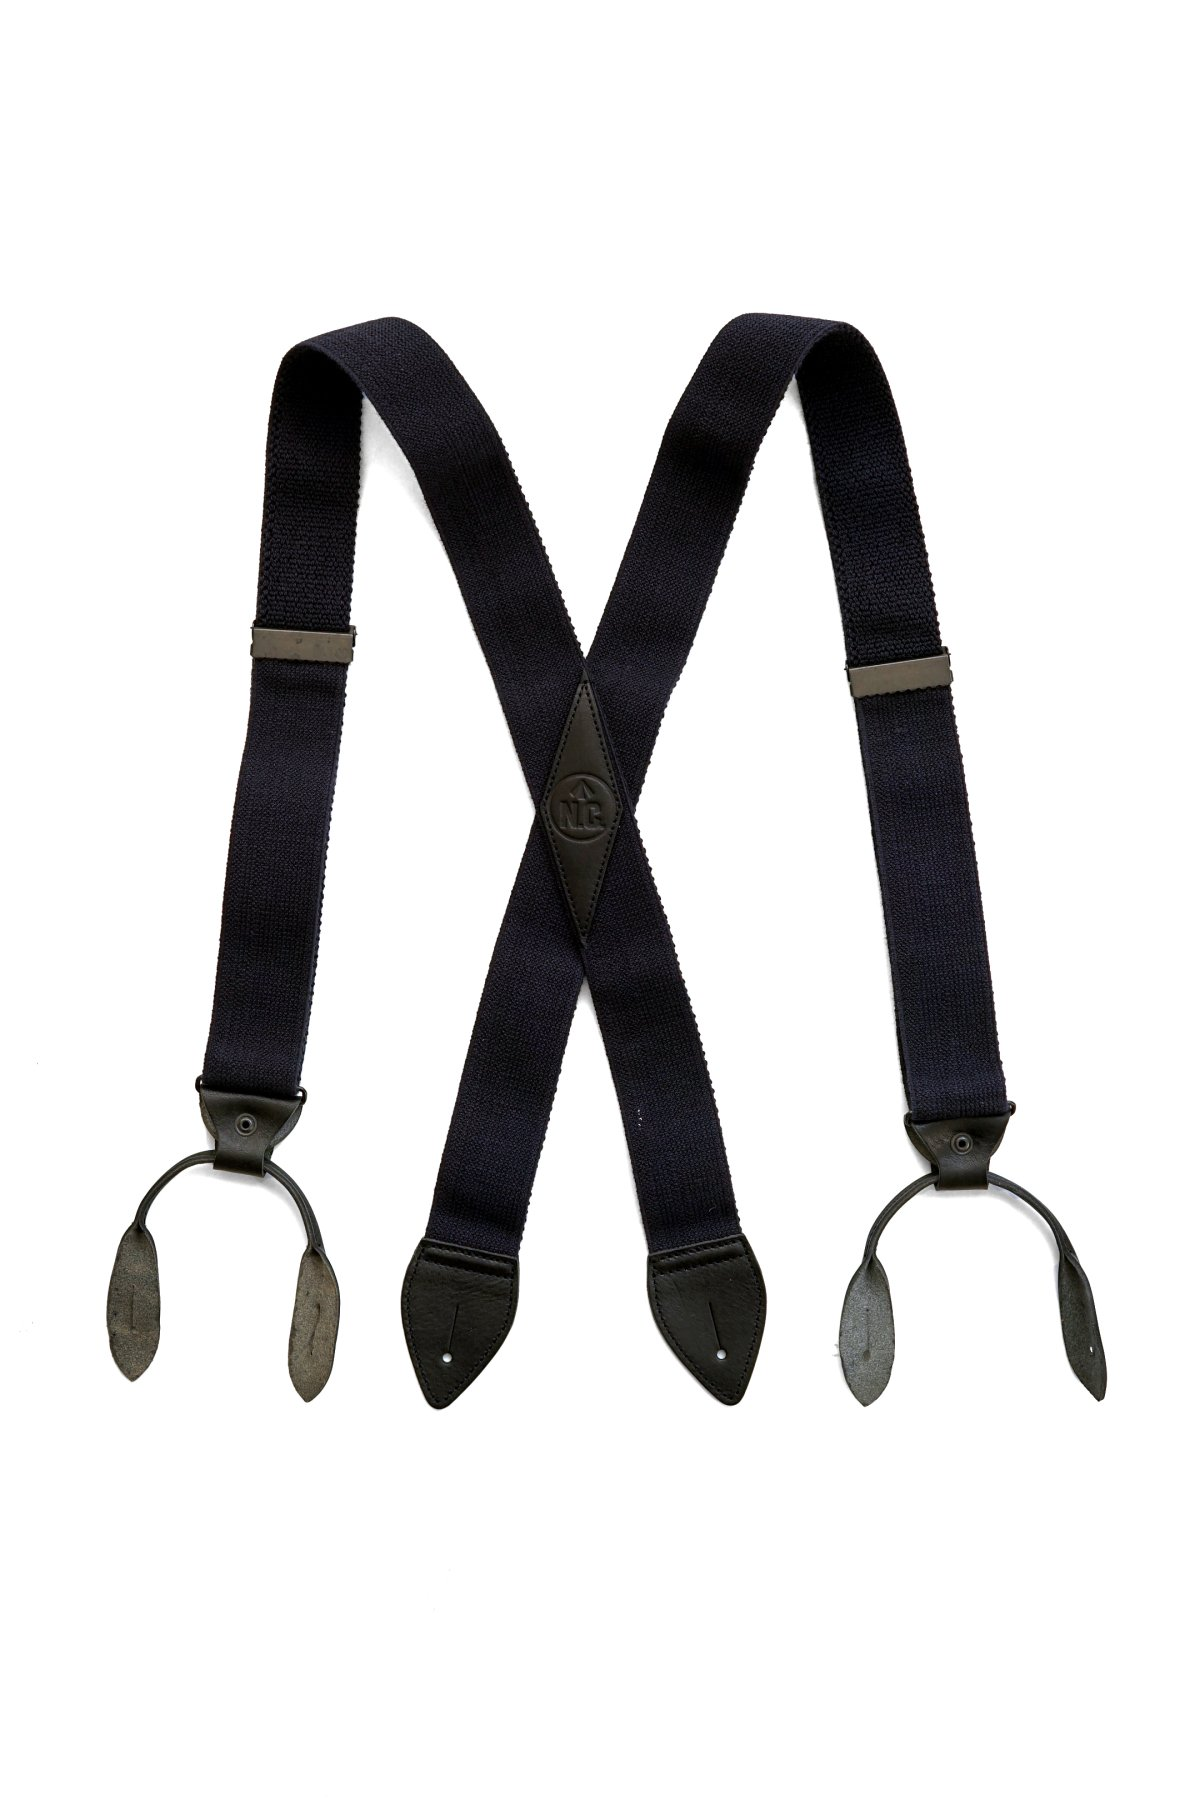 Nigel Cabourn - US ARMY SUSPENDER - NAVY